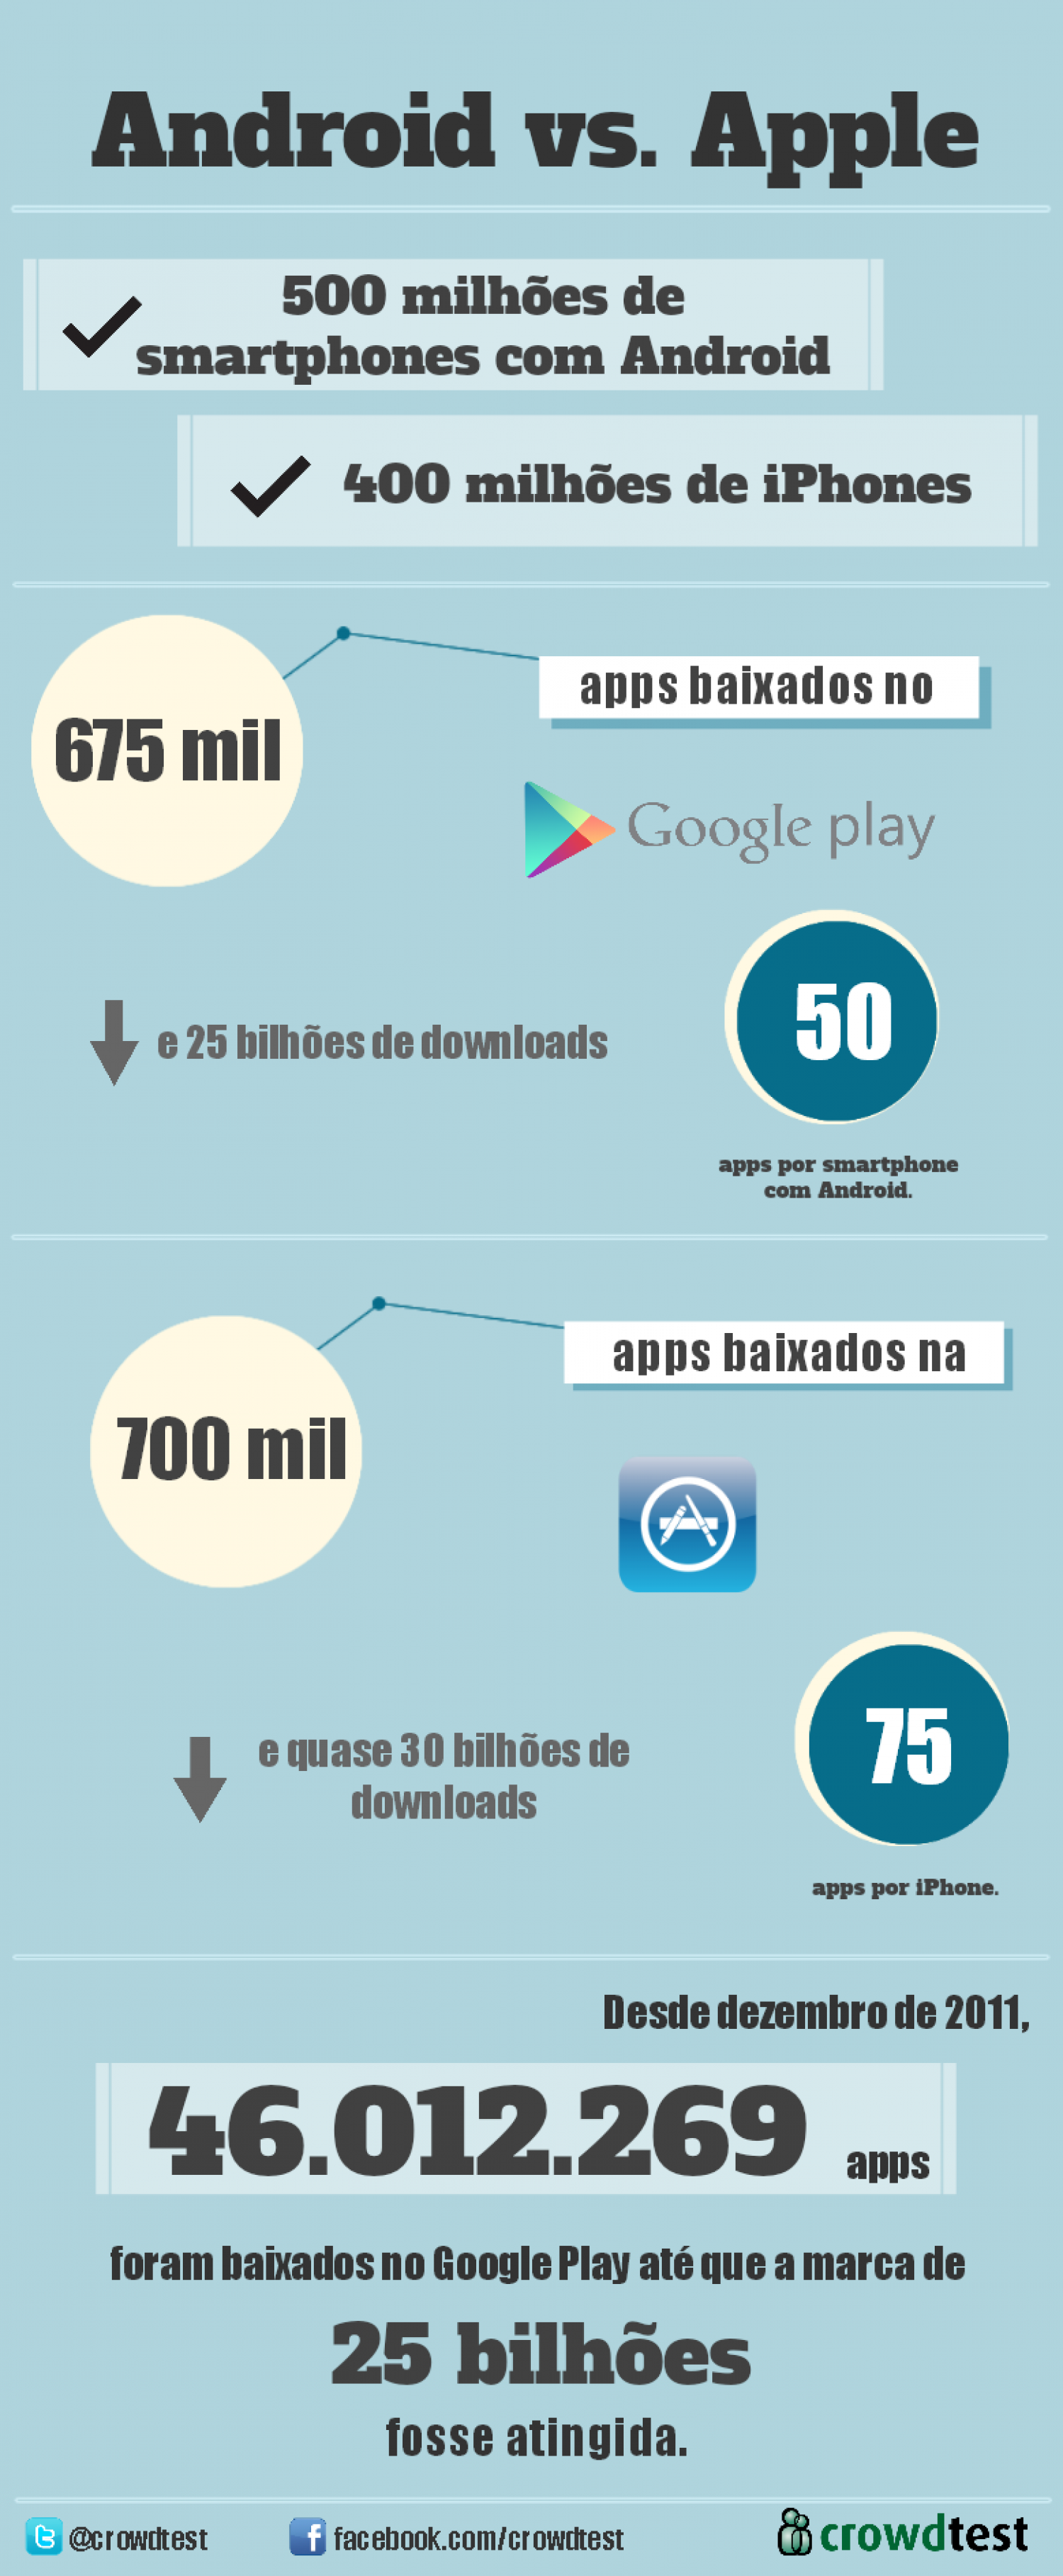 Android Versus Apple Infographic